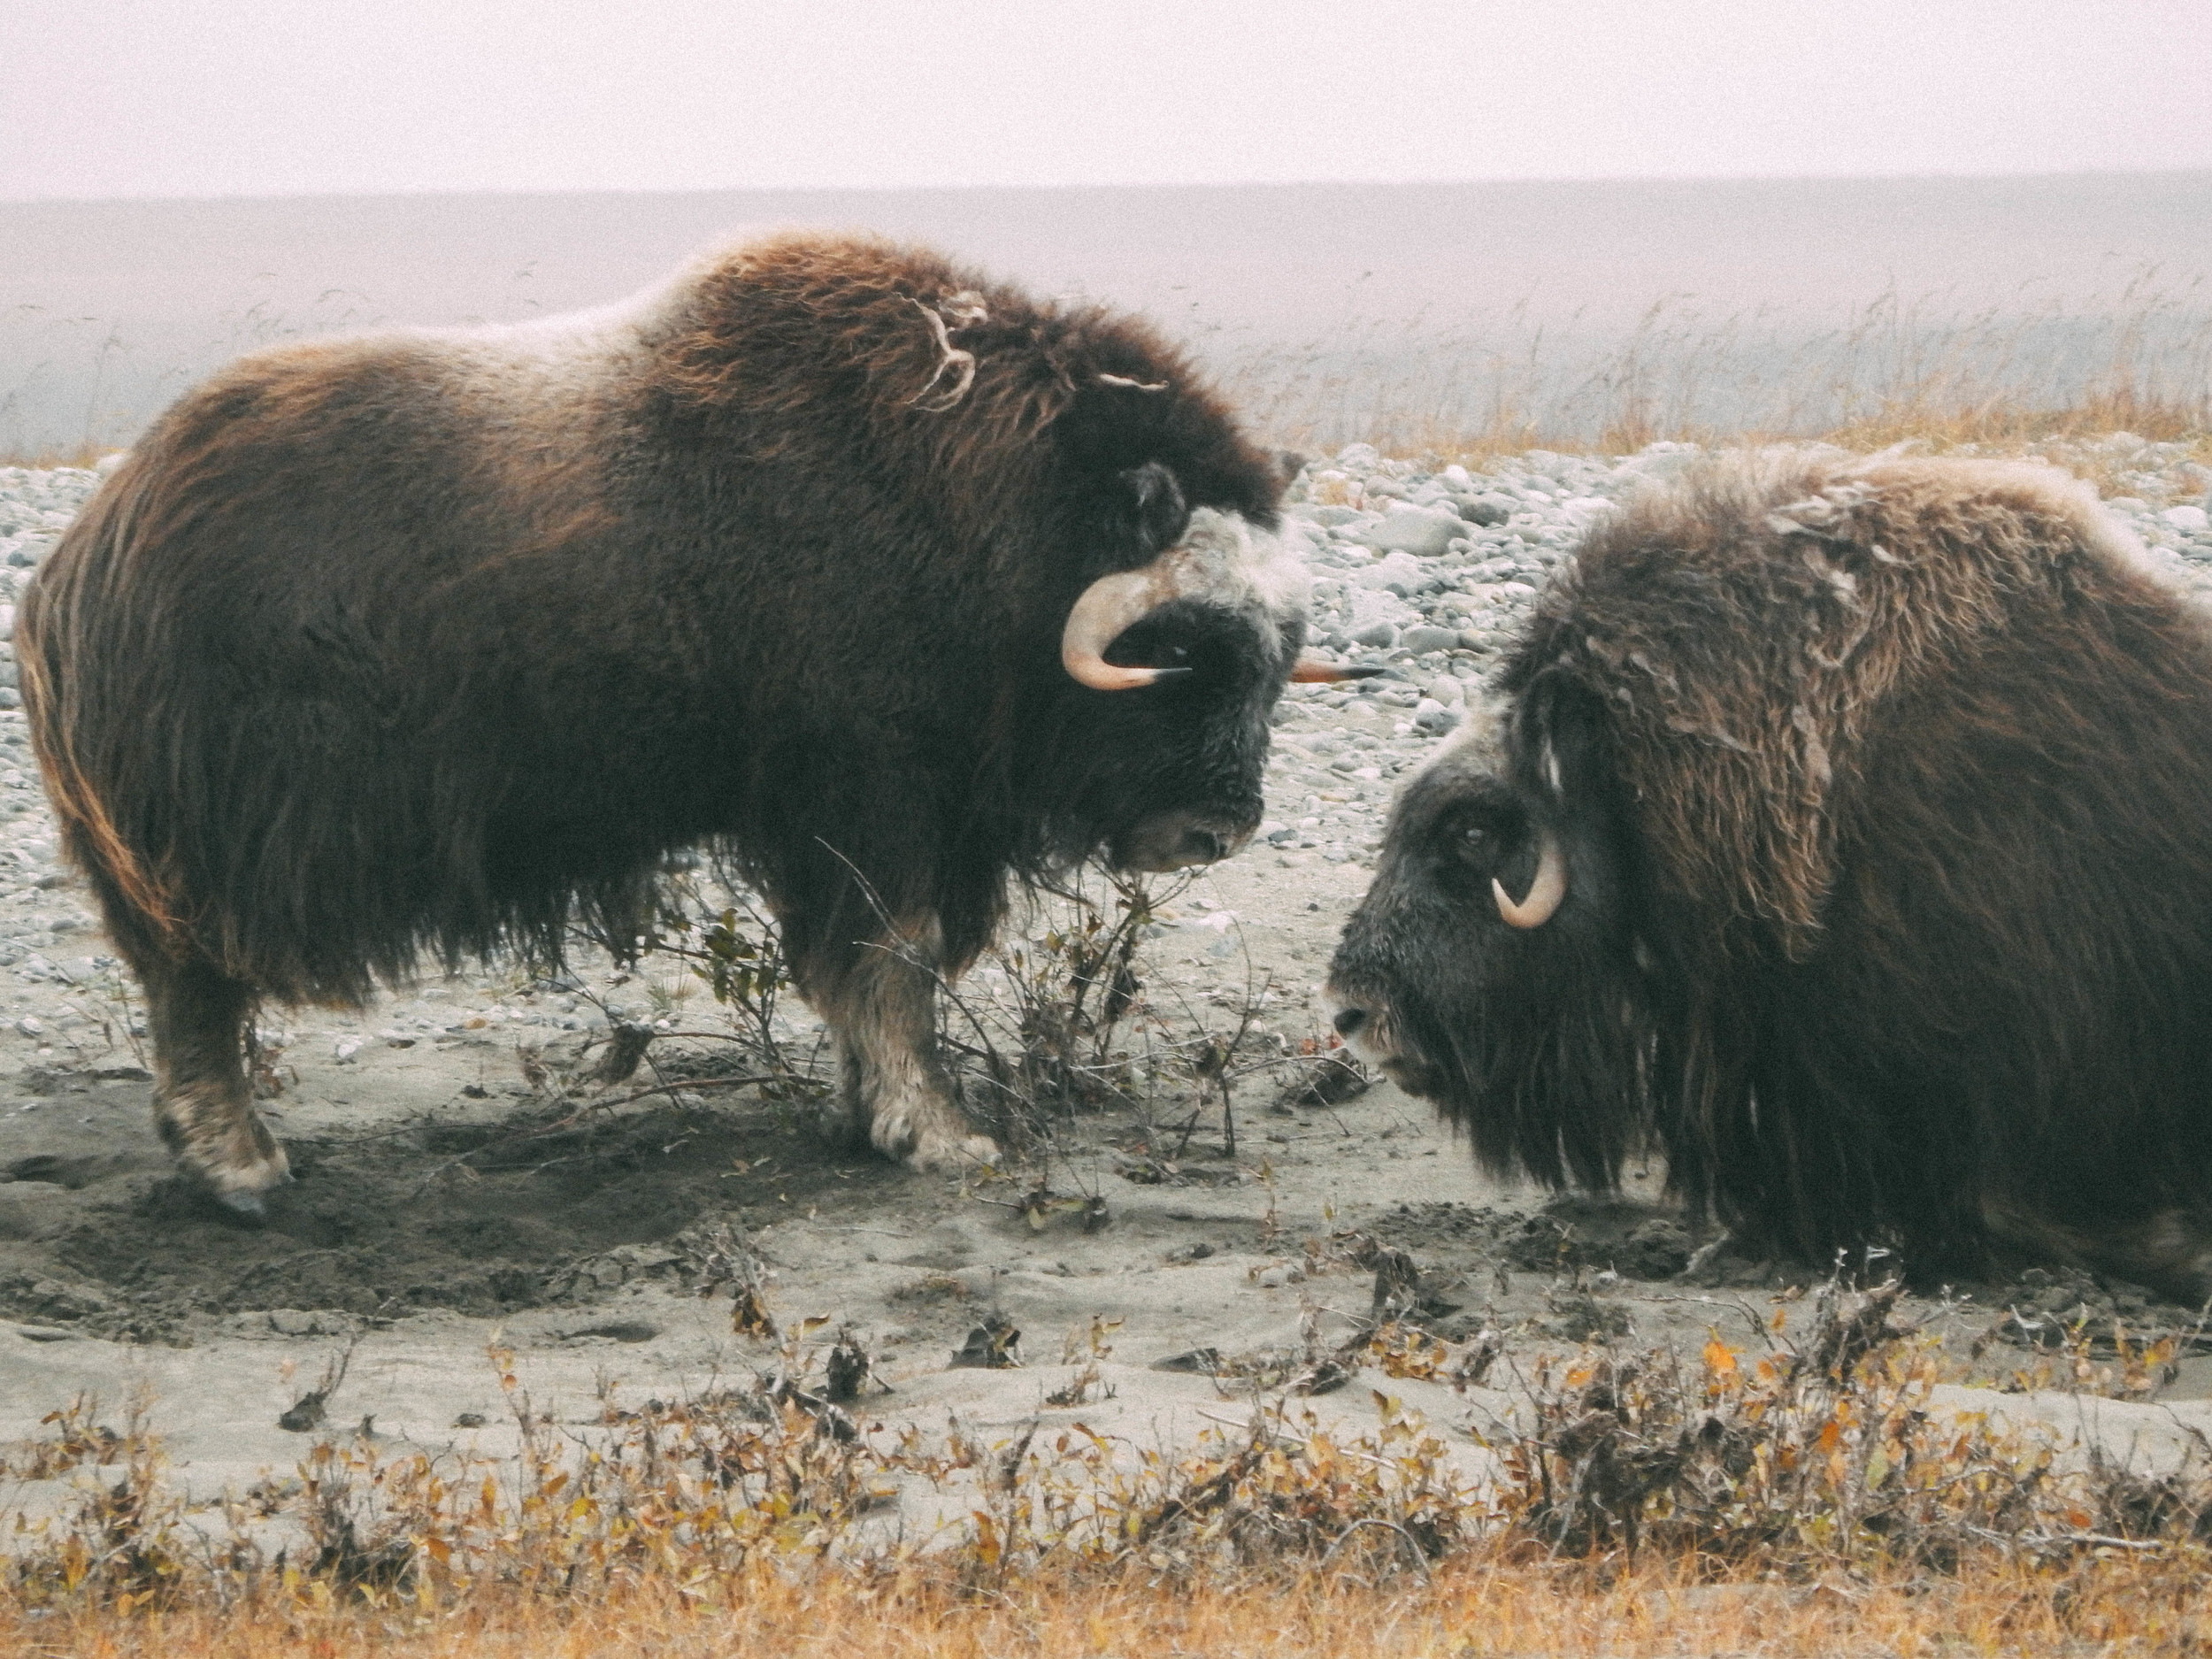 In the Arctic Slope of the Brookes Range, these musk oxen were seen along the Haul road during a family caribou hunt.